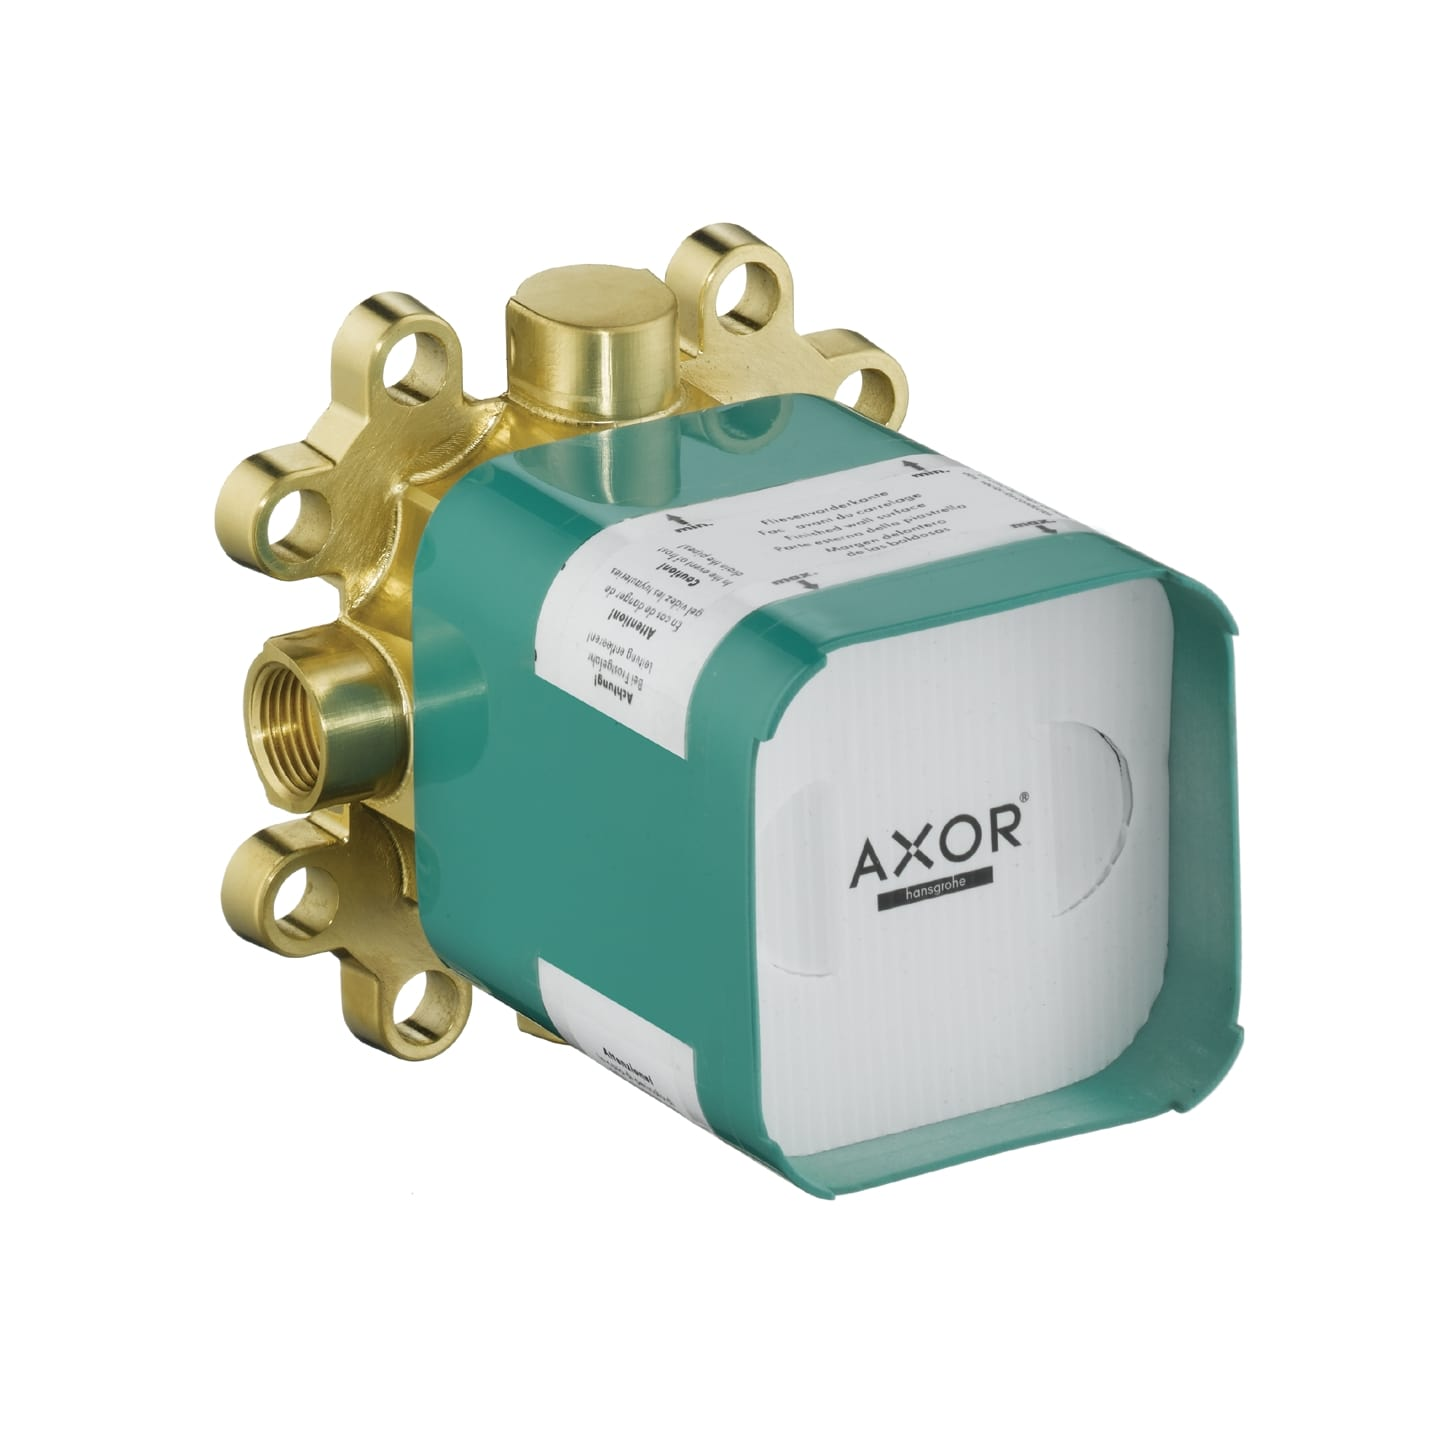 Axor 10921181 N/A Starck Rough In Valve - FaucetDirect.com